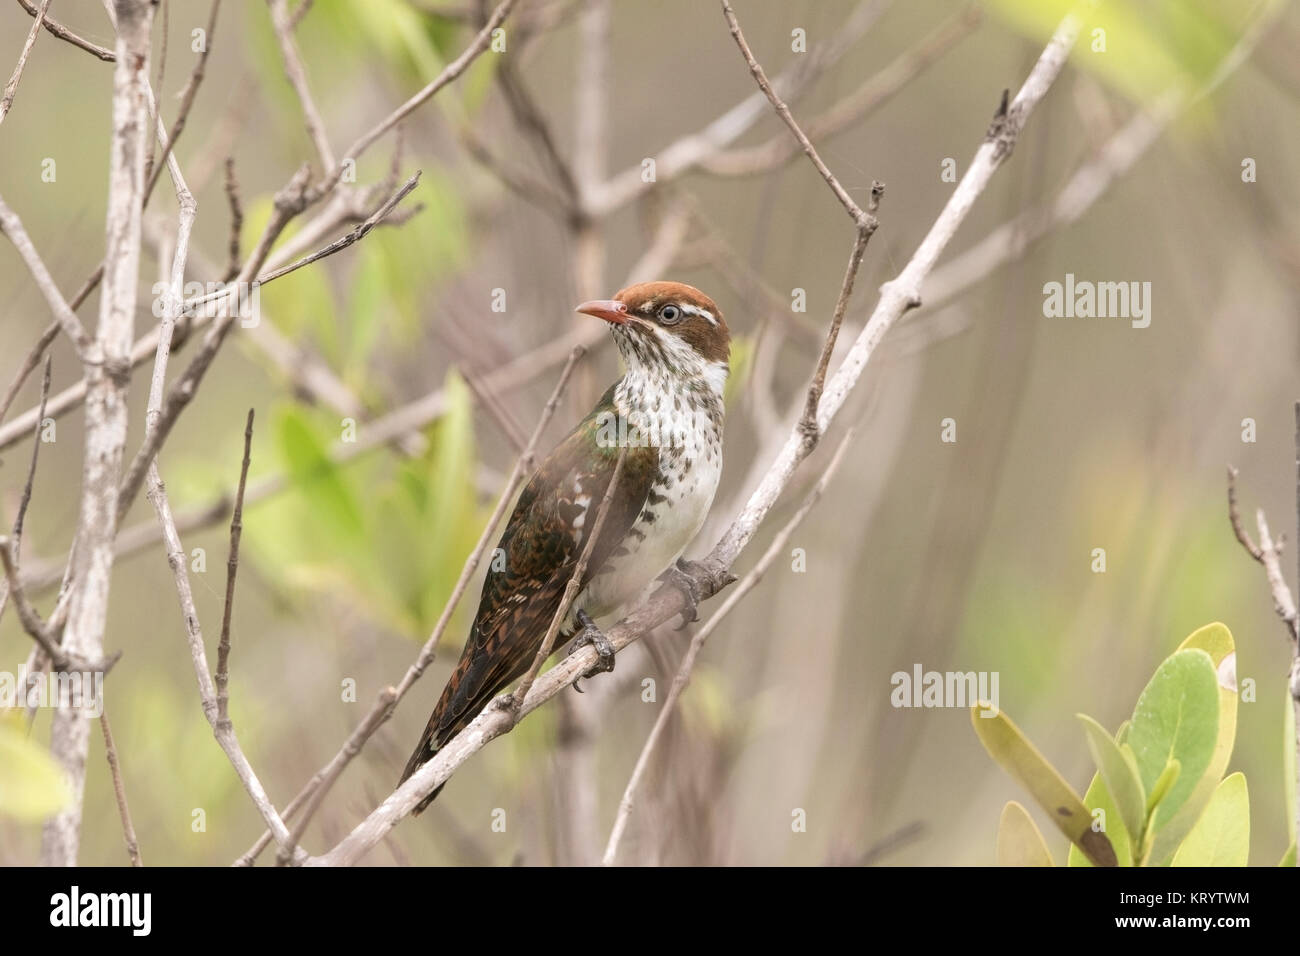 diederik cuckoo or diedric cuckoo Chrysococcyx caprius adult female perched in bush, Gambia - Stock Image